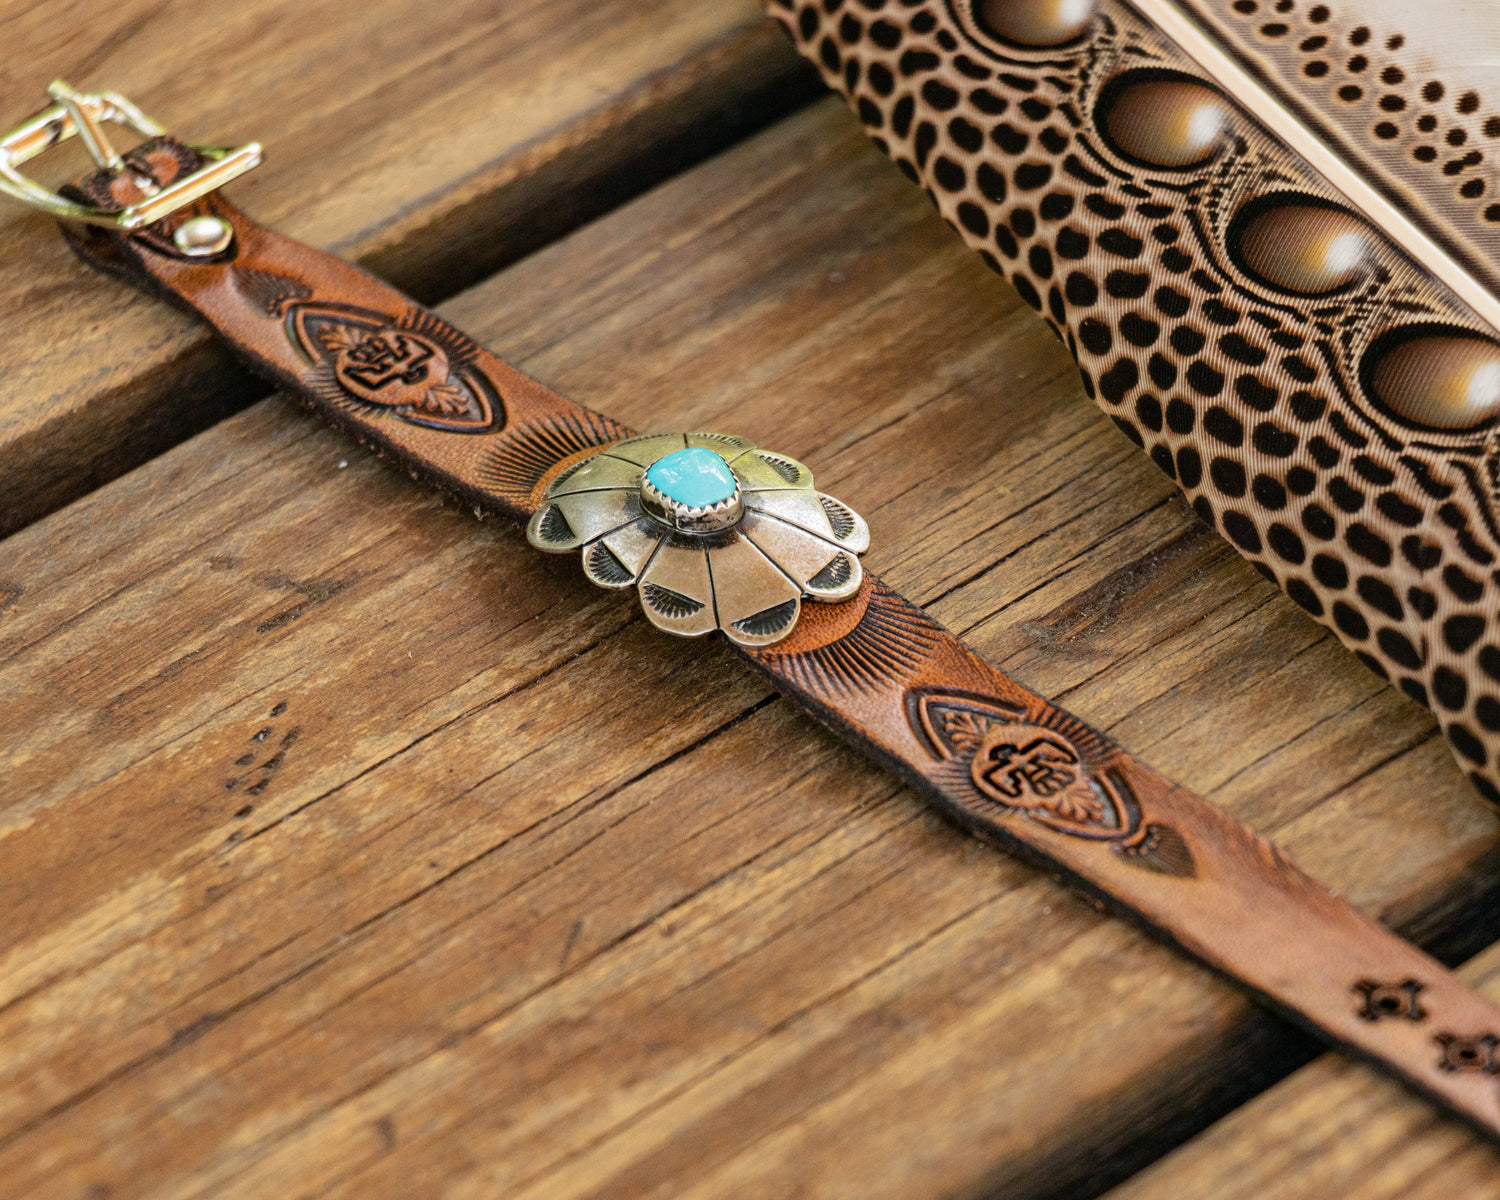 Little Leather Cuff with Sleeping Beauty Navajo Concho - Buffalo Girl